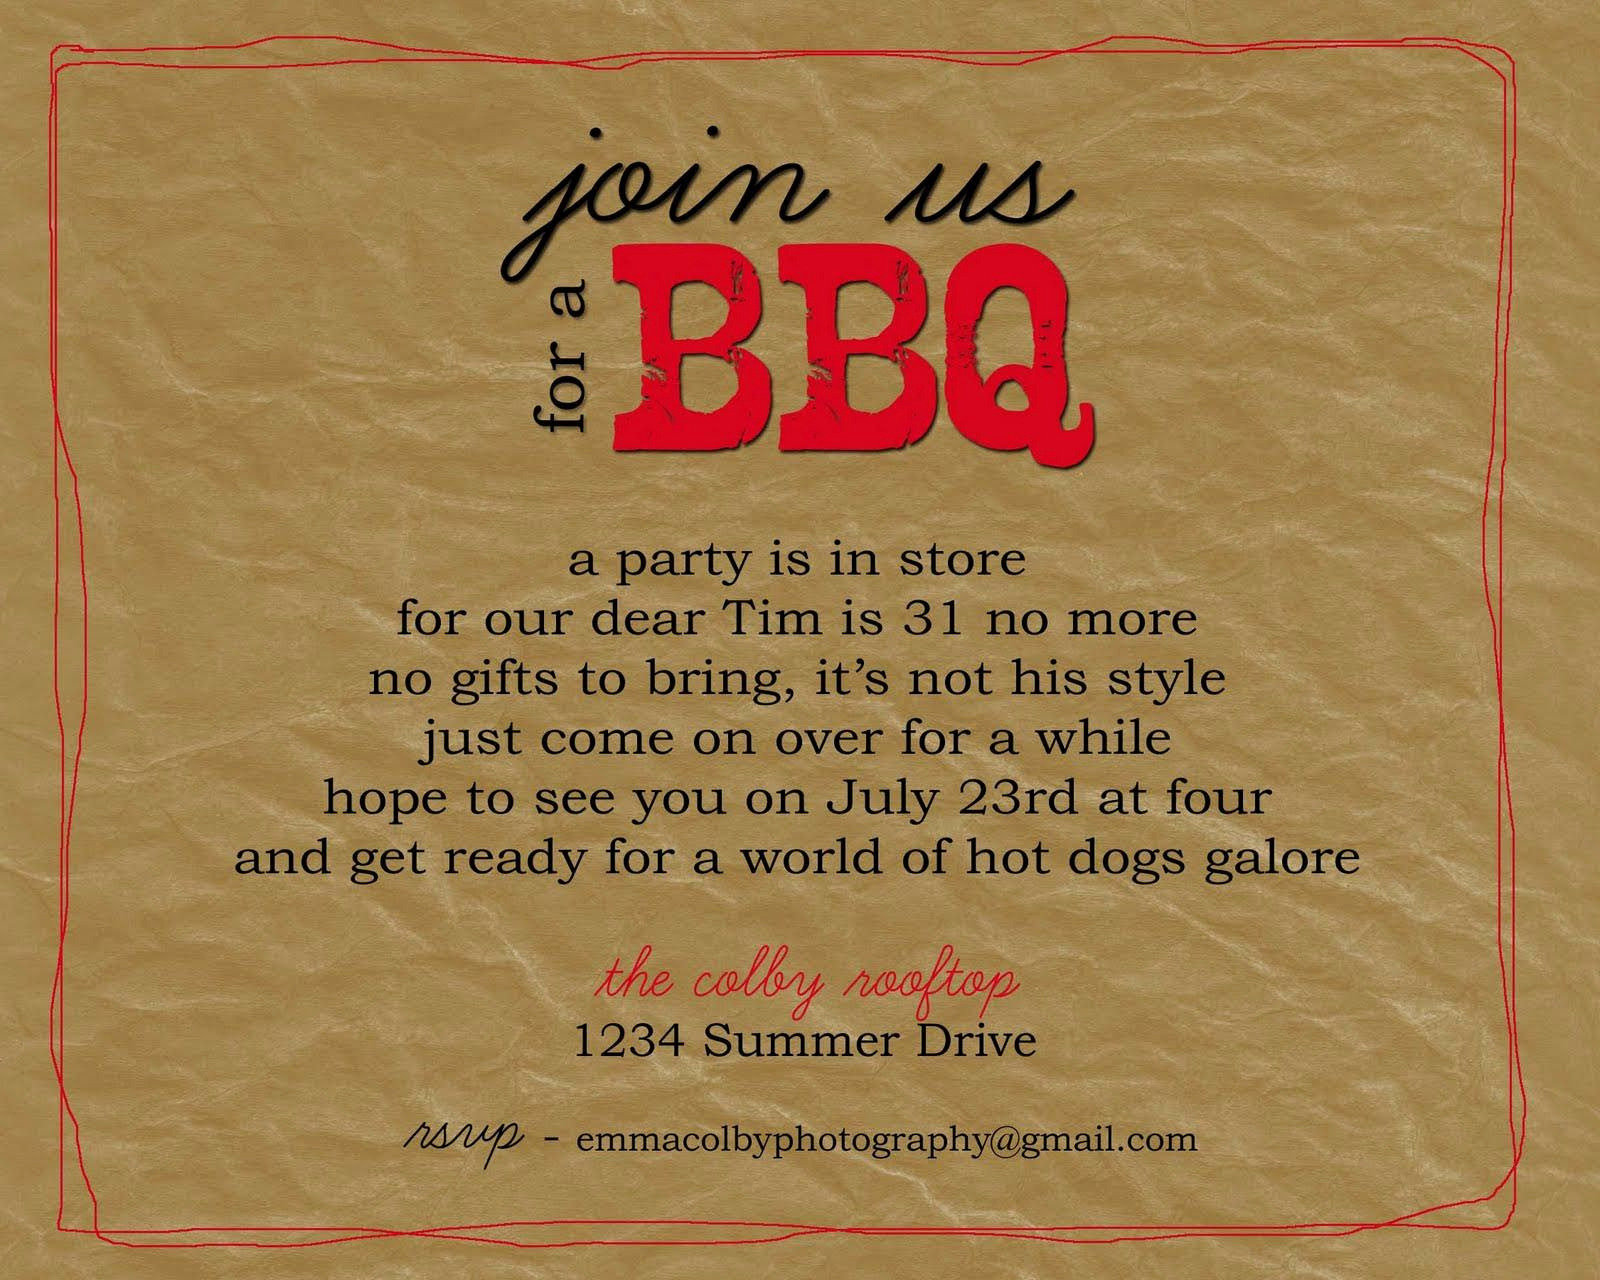 Bbq Invitation Wording Funny Awesome Bbq Party Invitation Wording Bbq